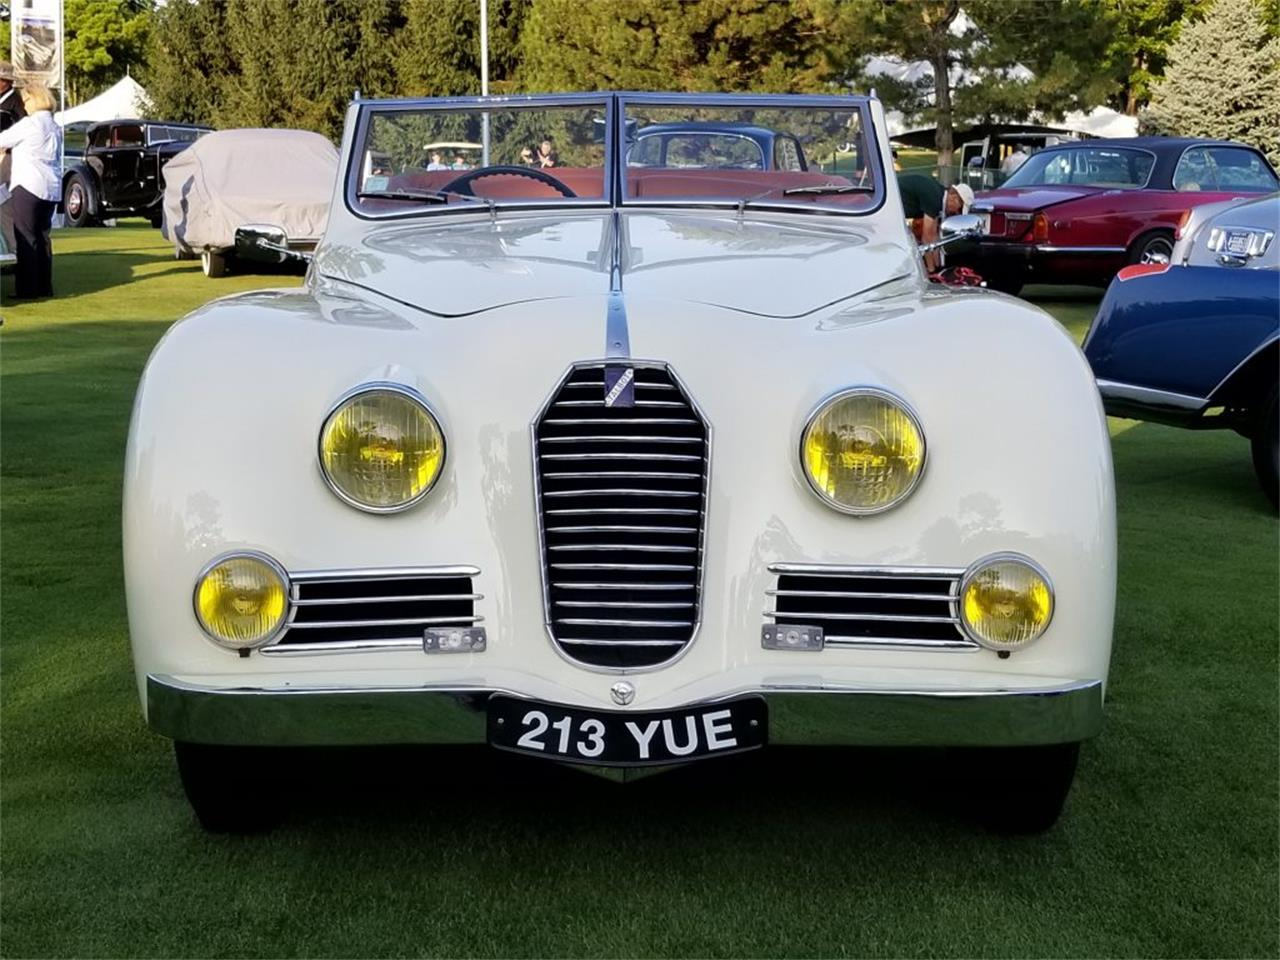 Large Picture of Classic '50 Talbot-Lago Roadster located in Auburn Hills Michigan Auction Vehicle Offered by Nostalgic Motoring Ltd. - OCHL